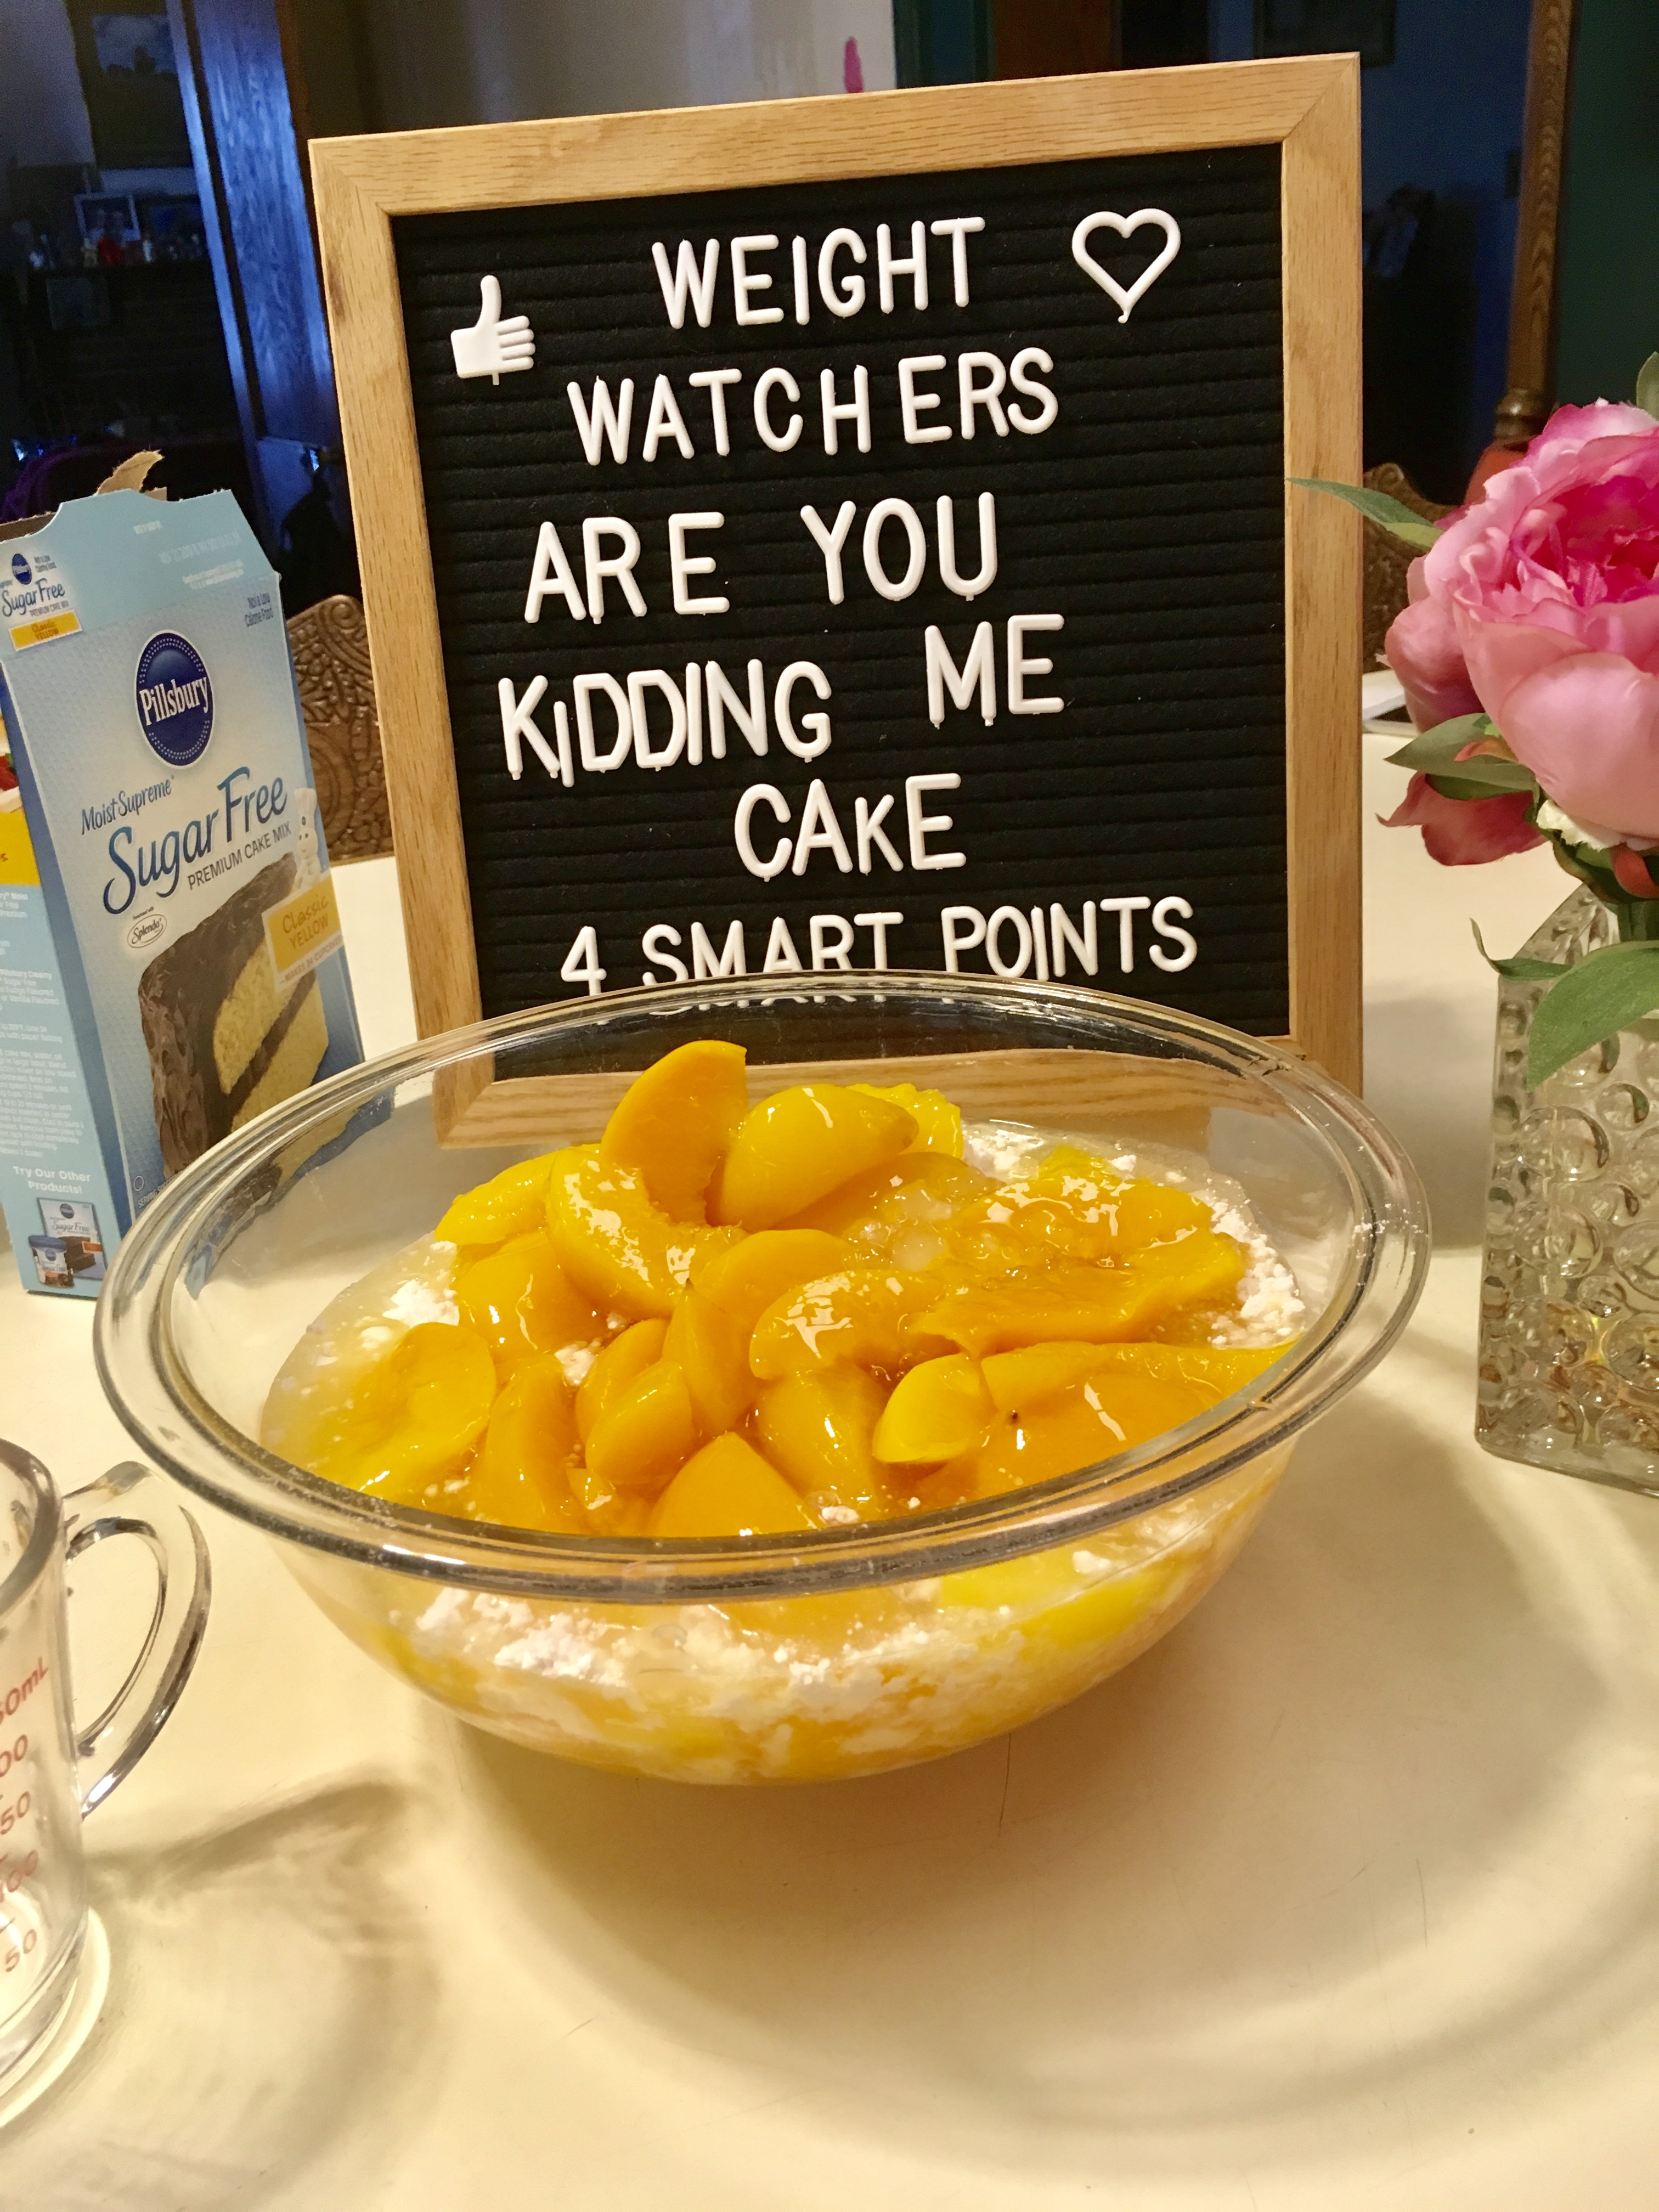 Are you kidding me cake Weight Watchers Style